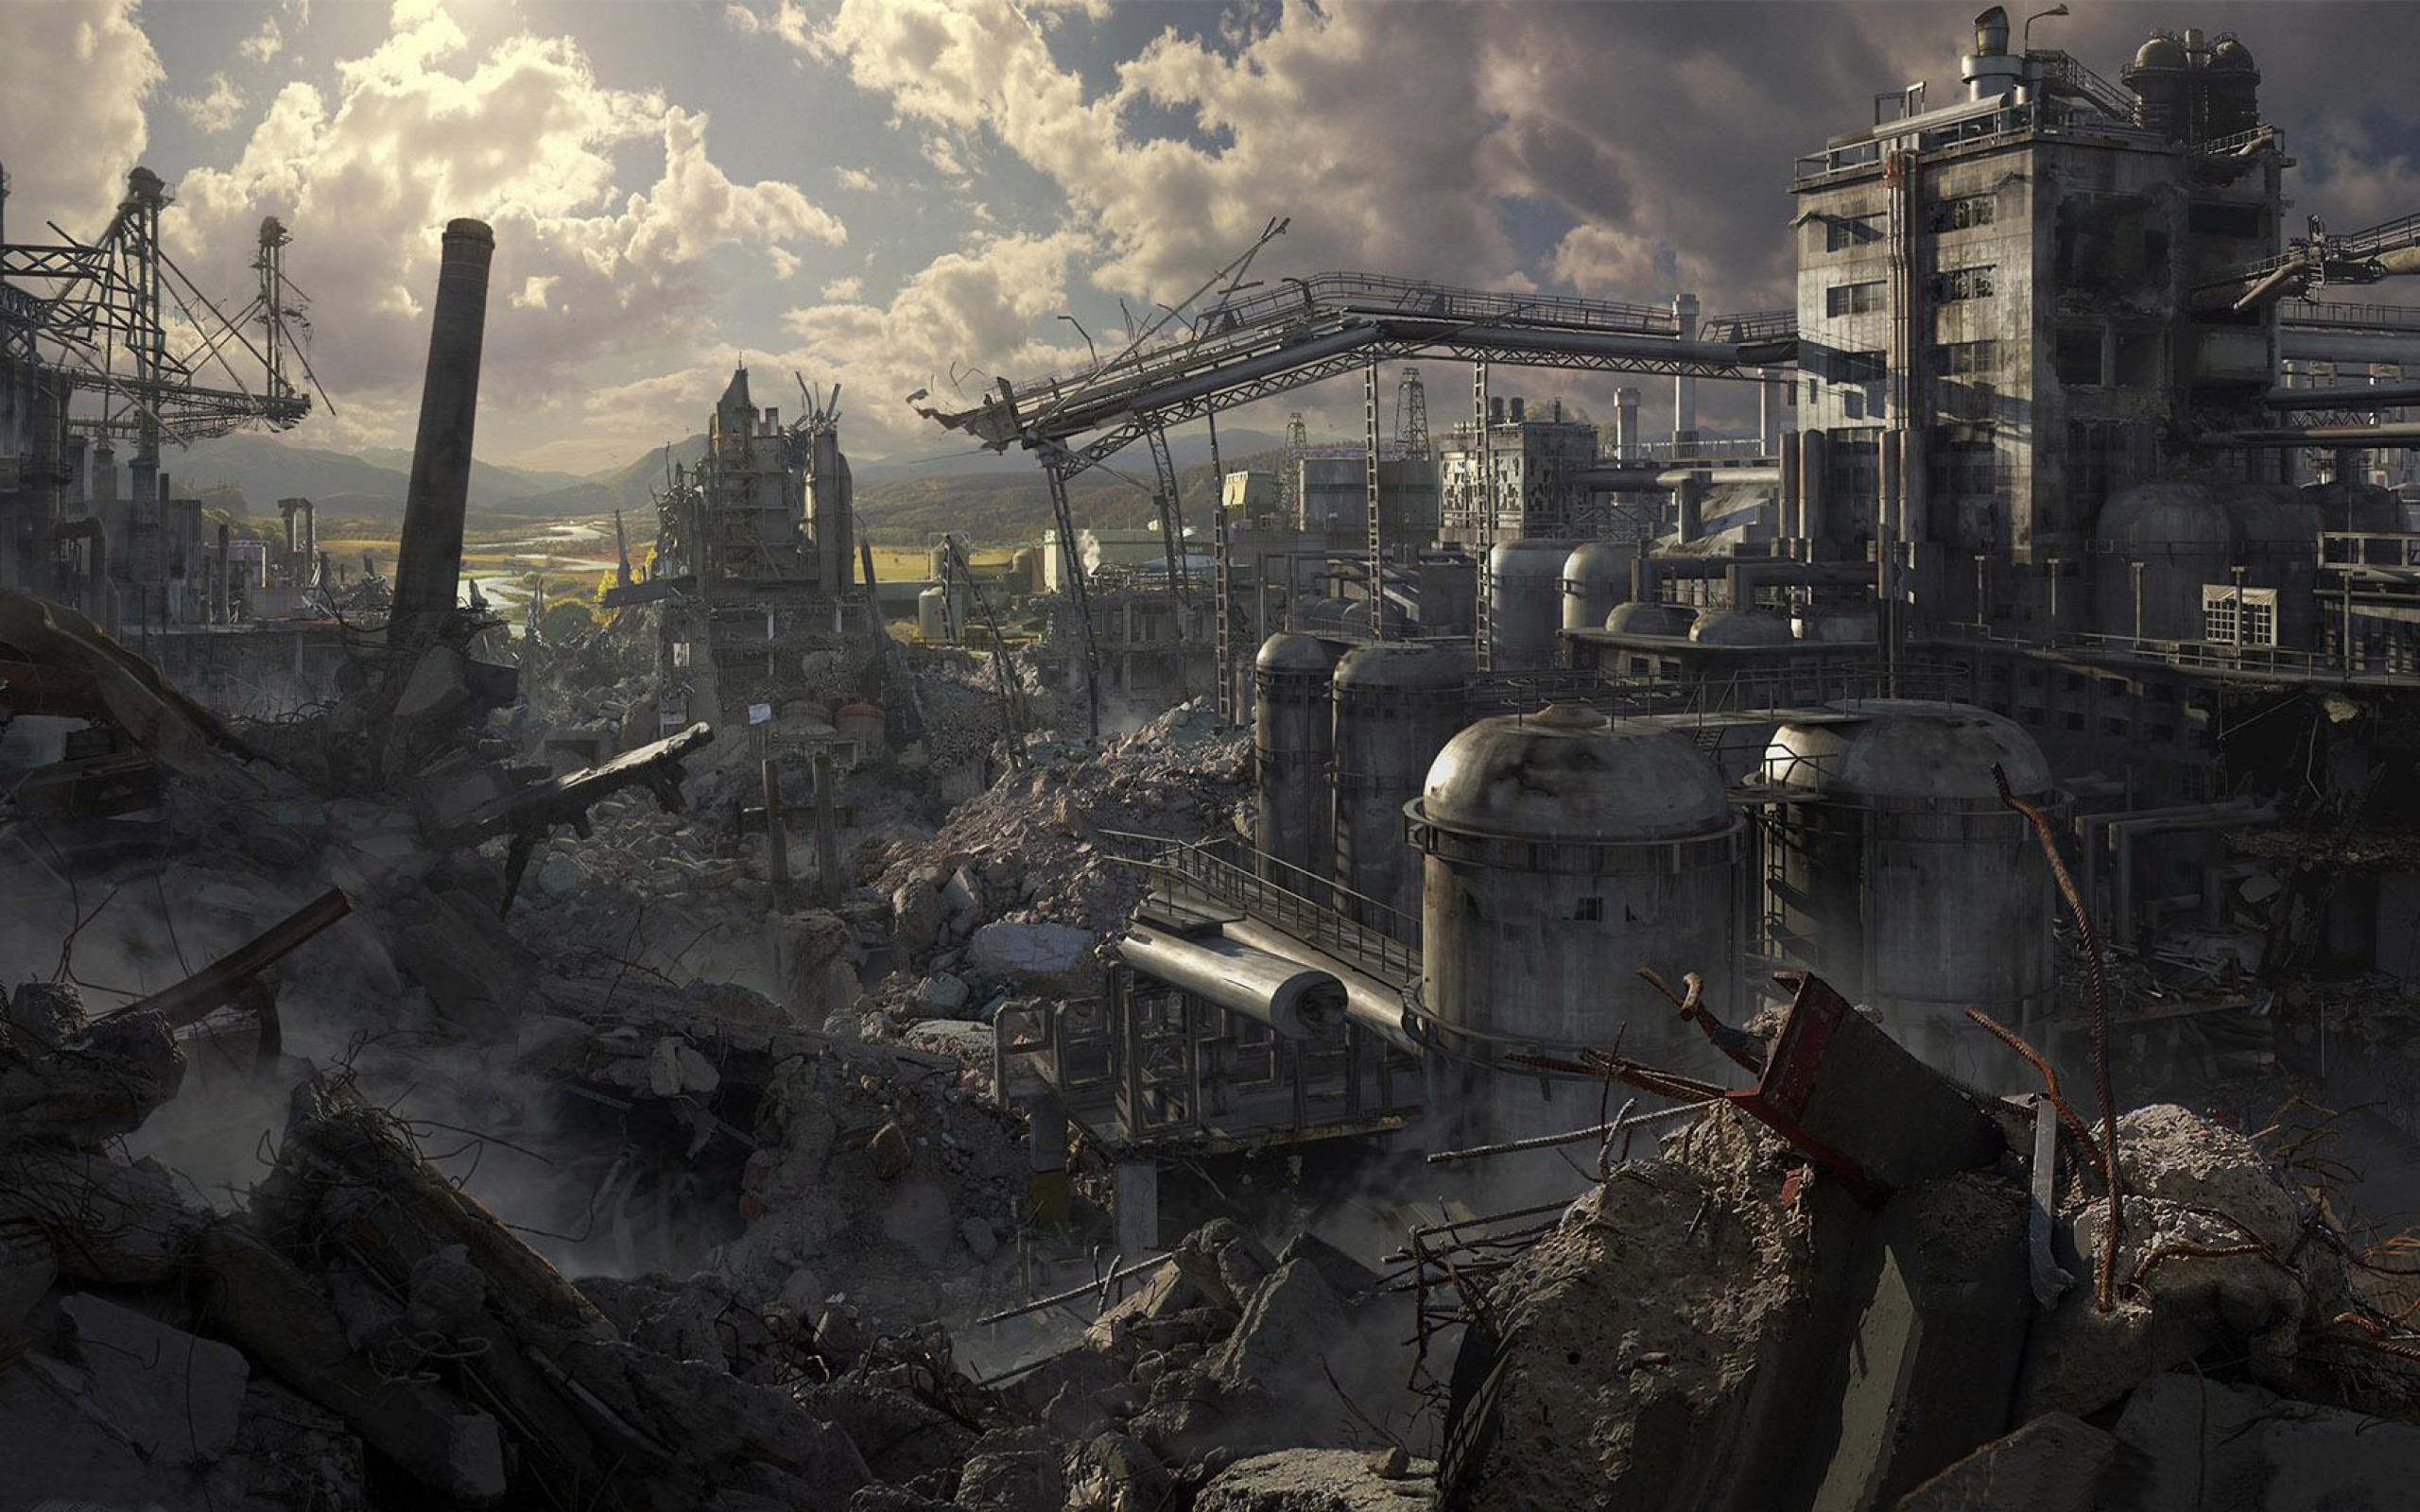 Home FantasyHD Wallpapers Destroyed City Wallpaper 2560x1600